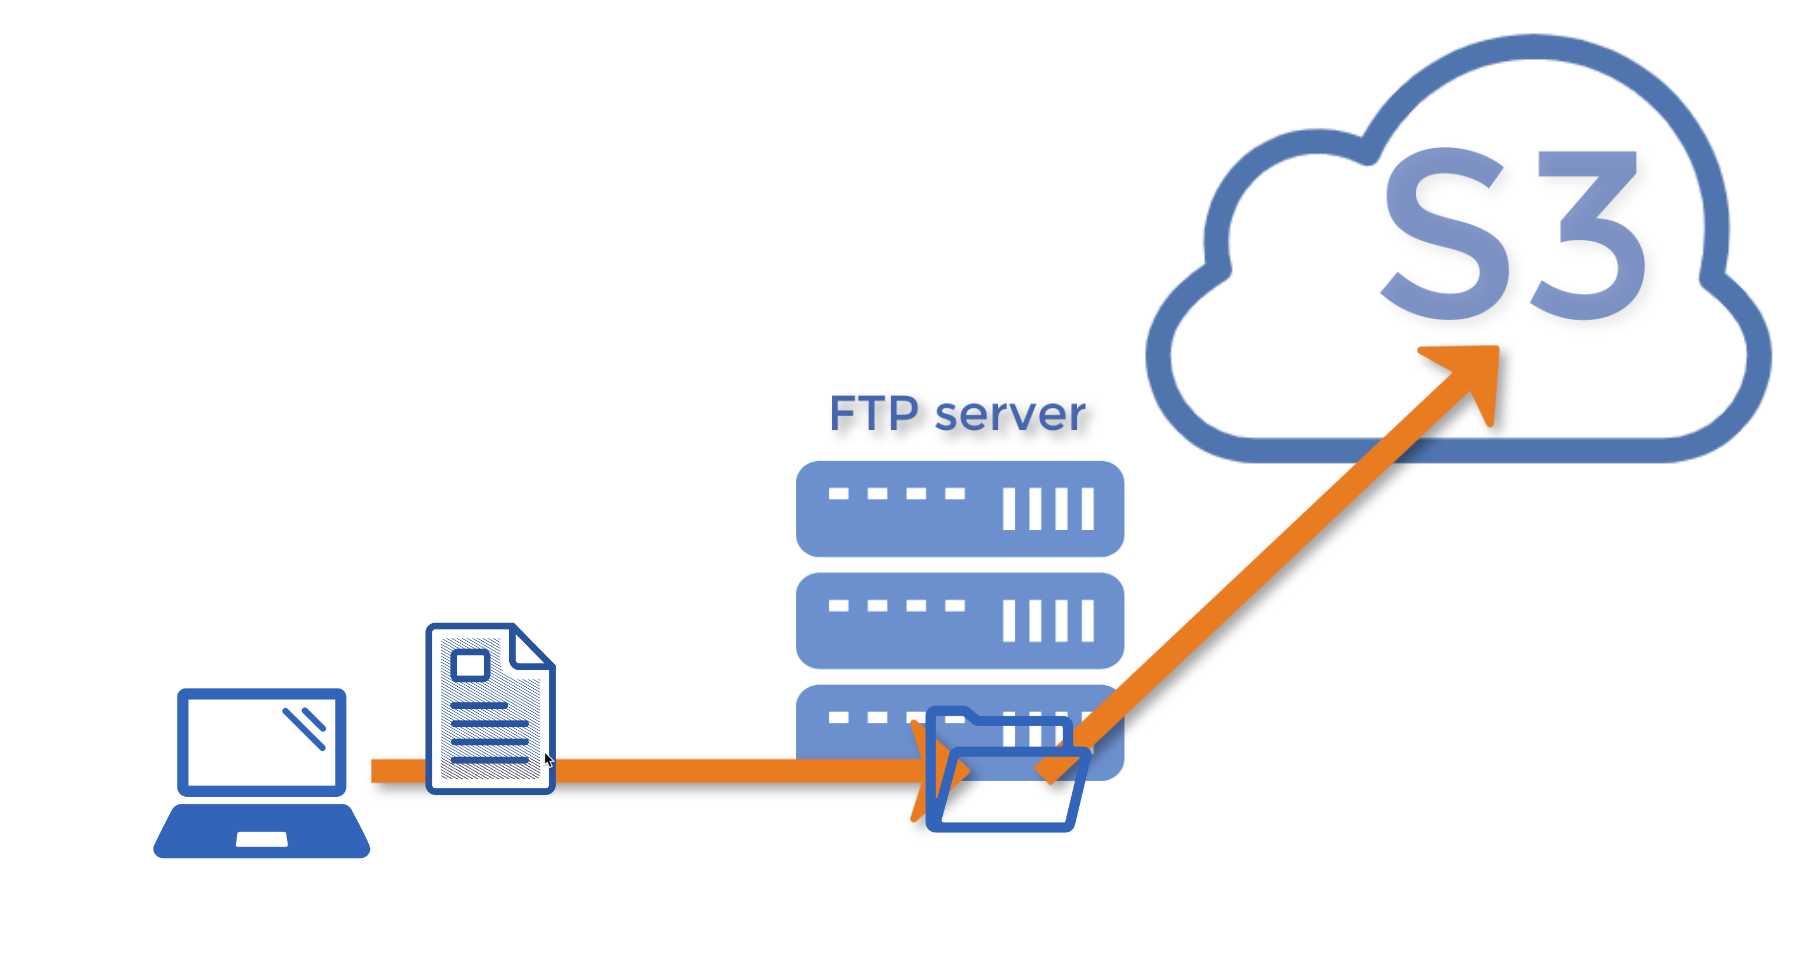 upload ftp file to amazon s3